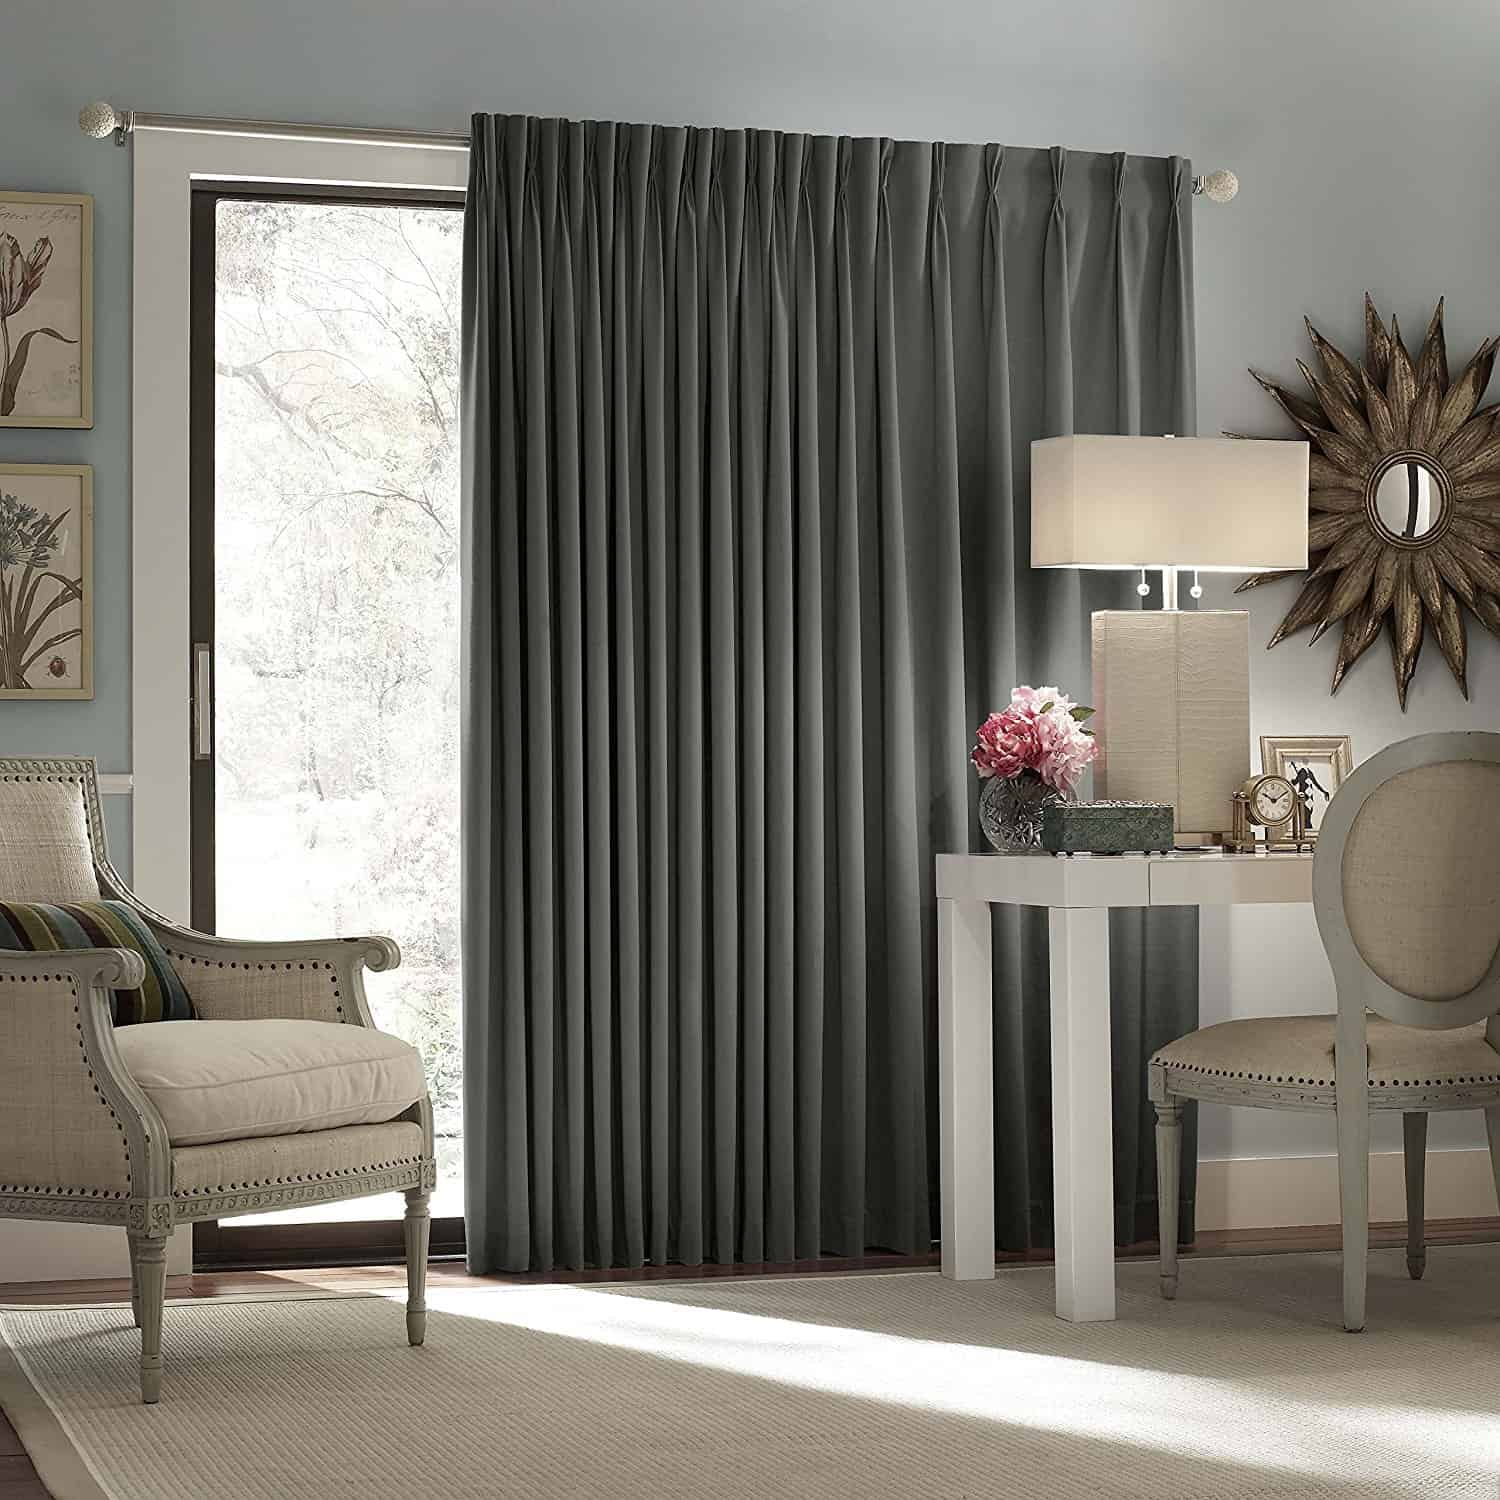 Eclipse Thermal Blackout Patio Door Curtain Panel, Charcoal